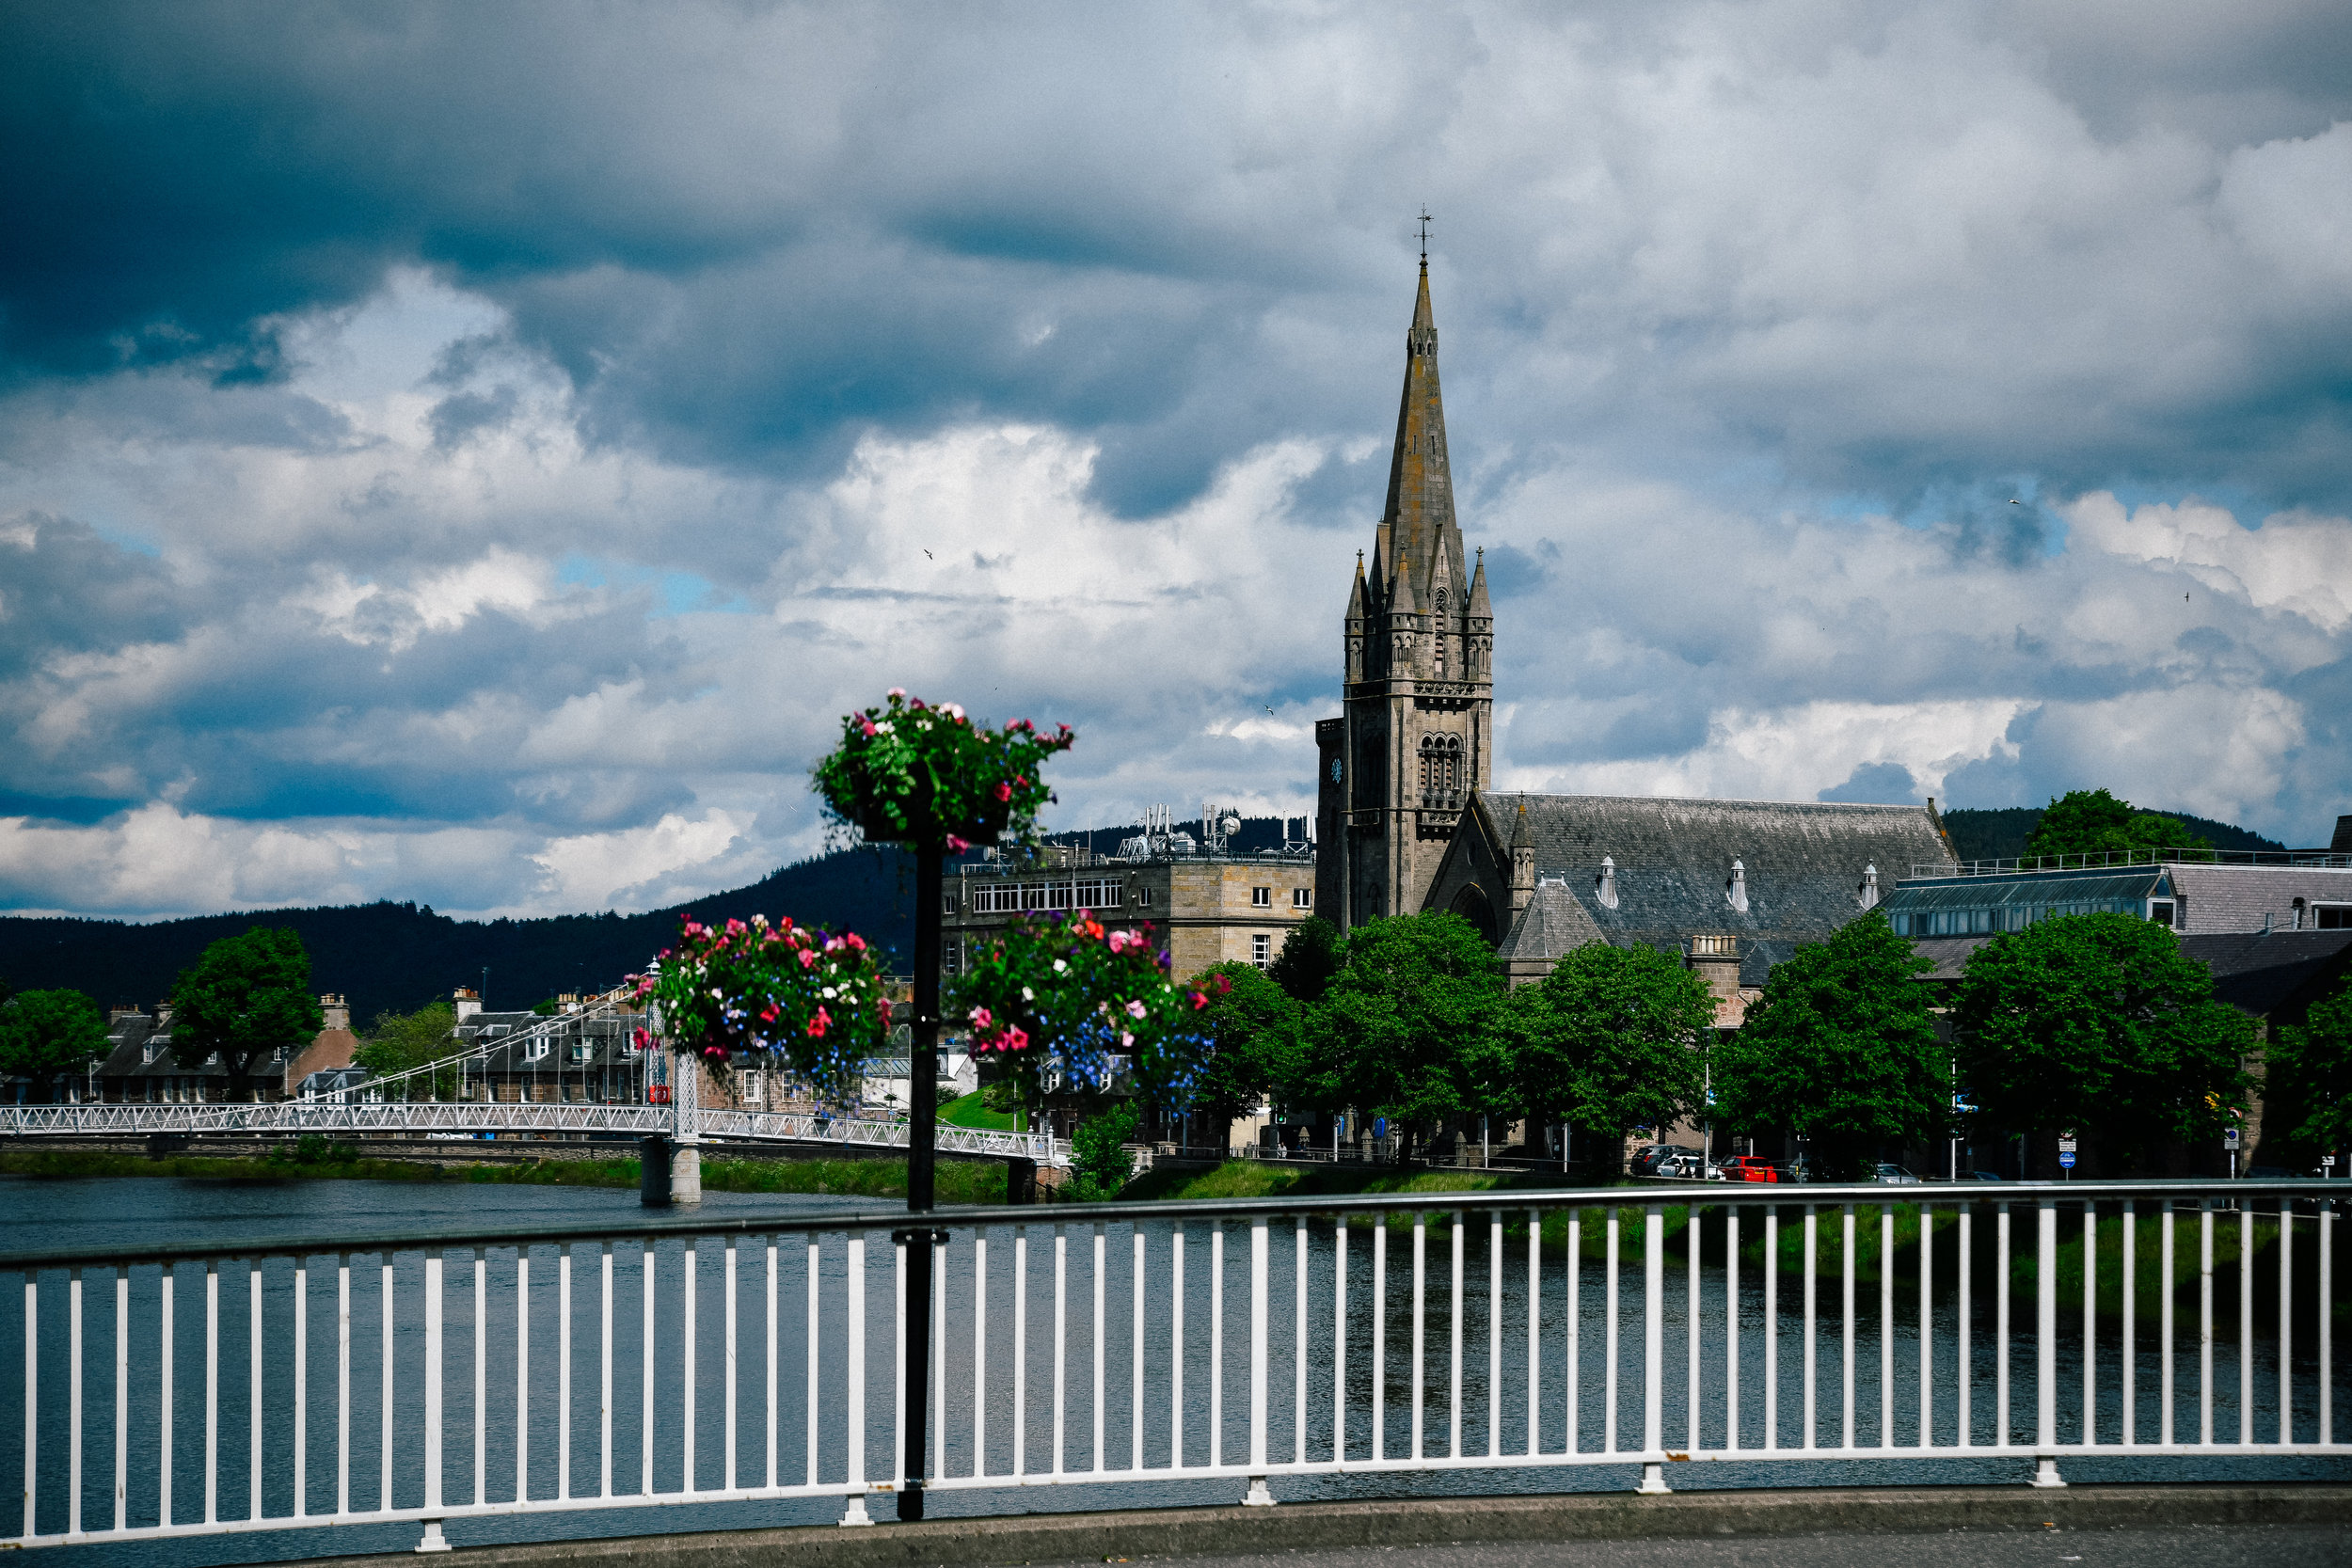 aA beautiful day in Inverness, Scotland